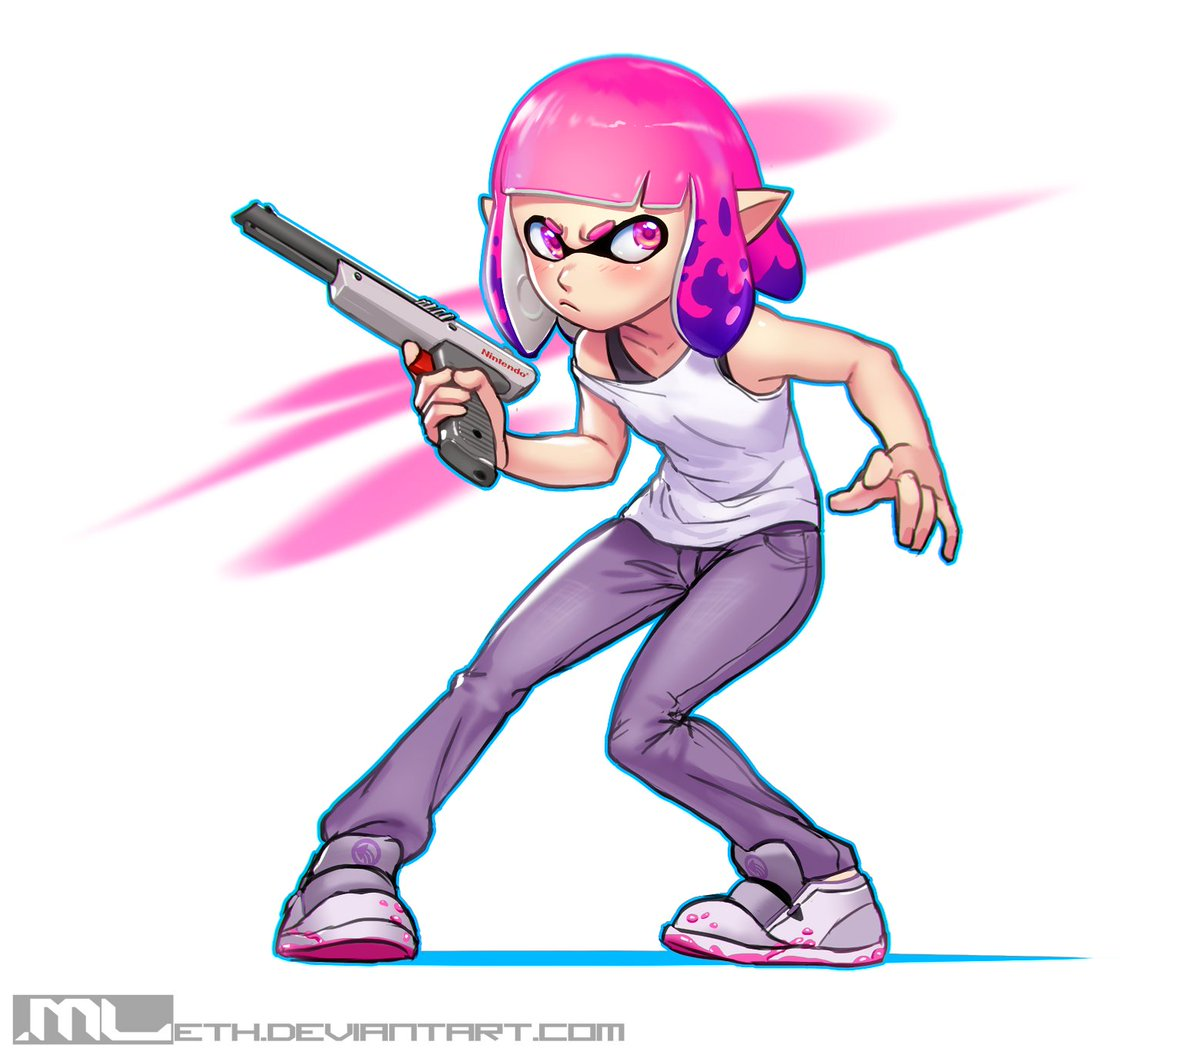 This is a fun lil drawing I did of @noitibmar&#39;s character Lynn! She&#39;s a badass inkling, that&#39;s for sure!  #Splatoon #Drawing <br>http://pic.twitter.com/UzKWVl7JVu